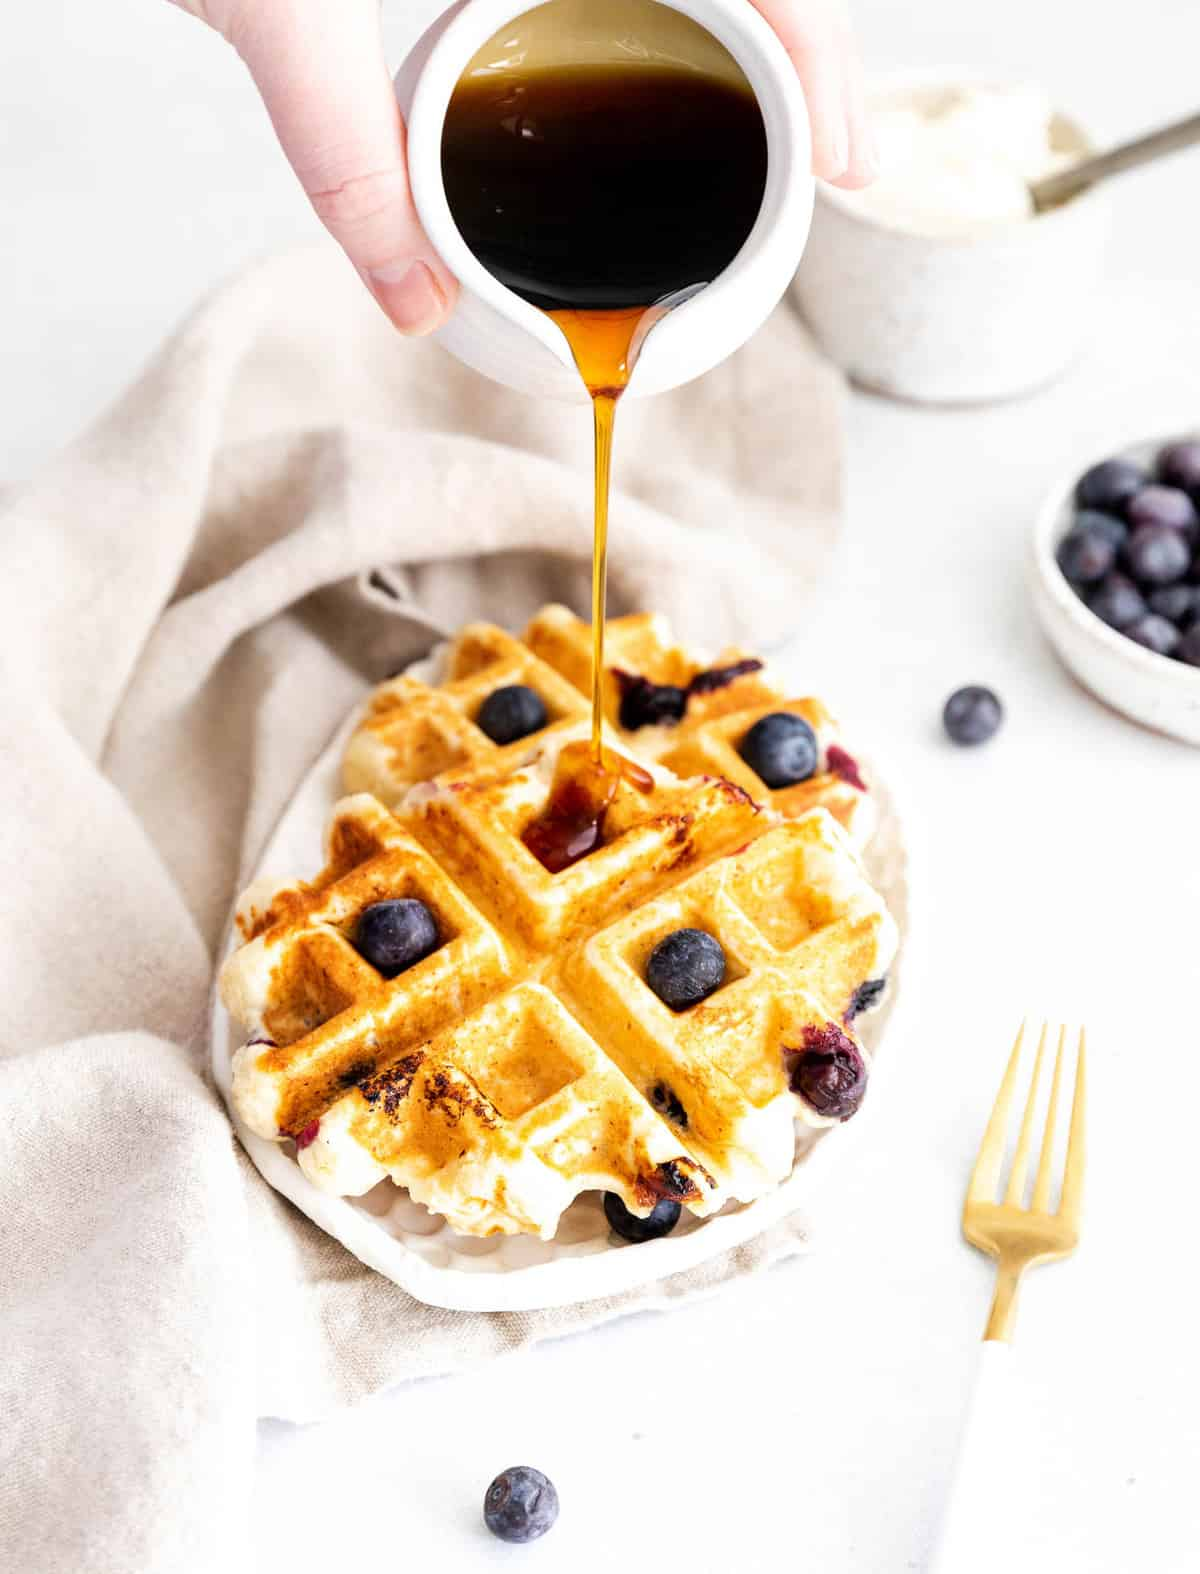 Syrup being poured on two small waffles topped with blueberries.